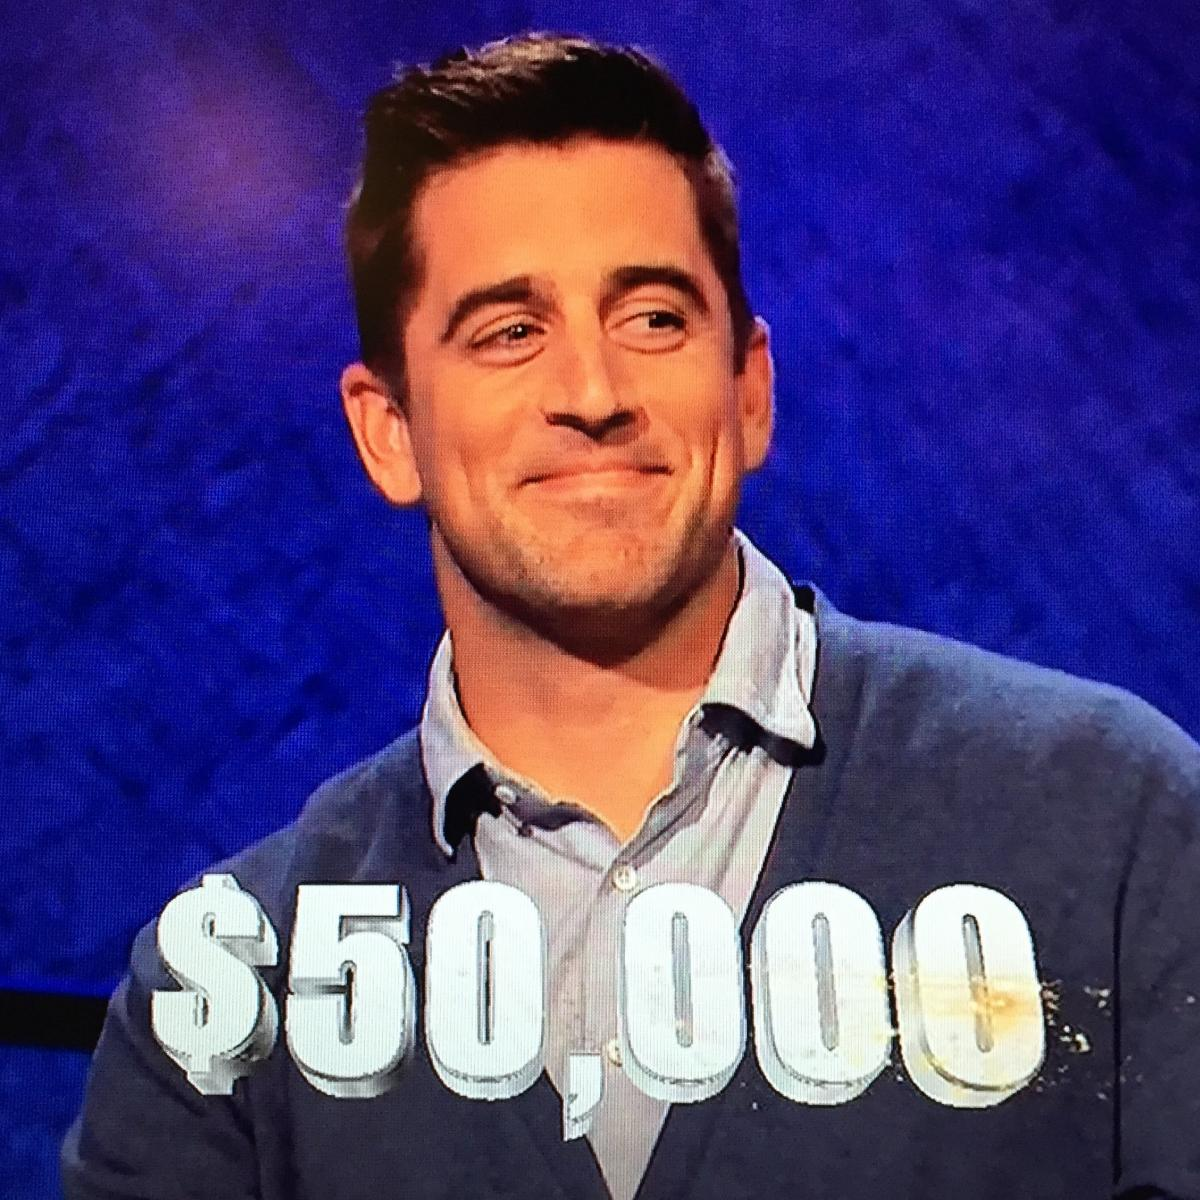 Aaron Rodgers Takes 1st Place On 'Celebrity Jeopardy